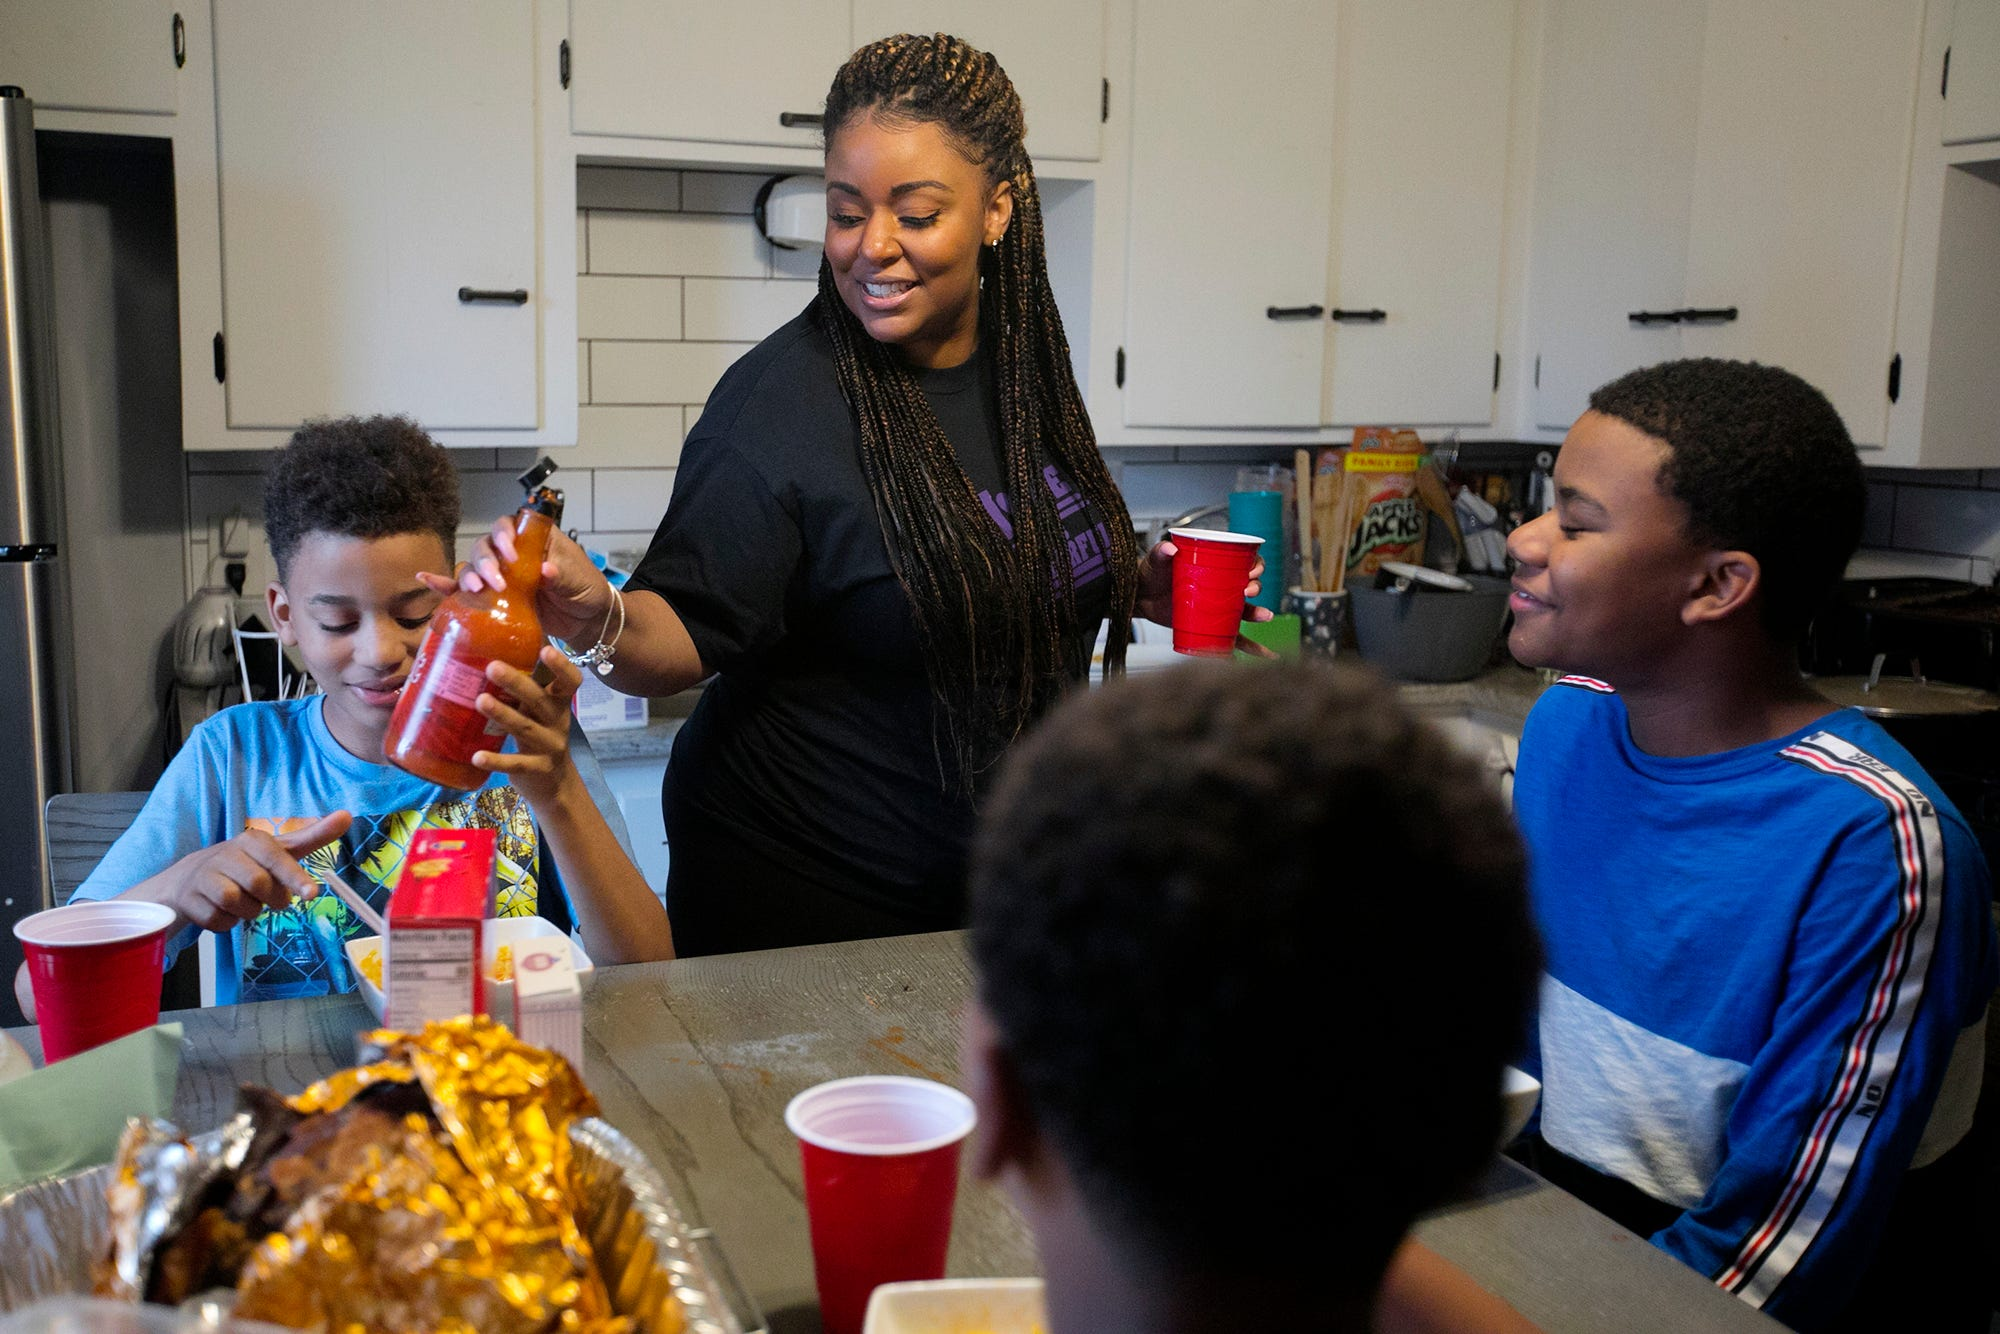 Stevi Knighton makes ramen noodles for her two sons, 10-year-old Ari, left, and 12-year-old Hayden, right, and their friend, Michael Hughes, after school.